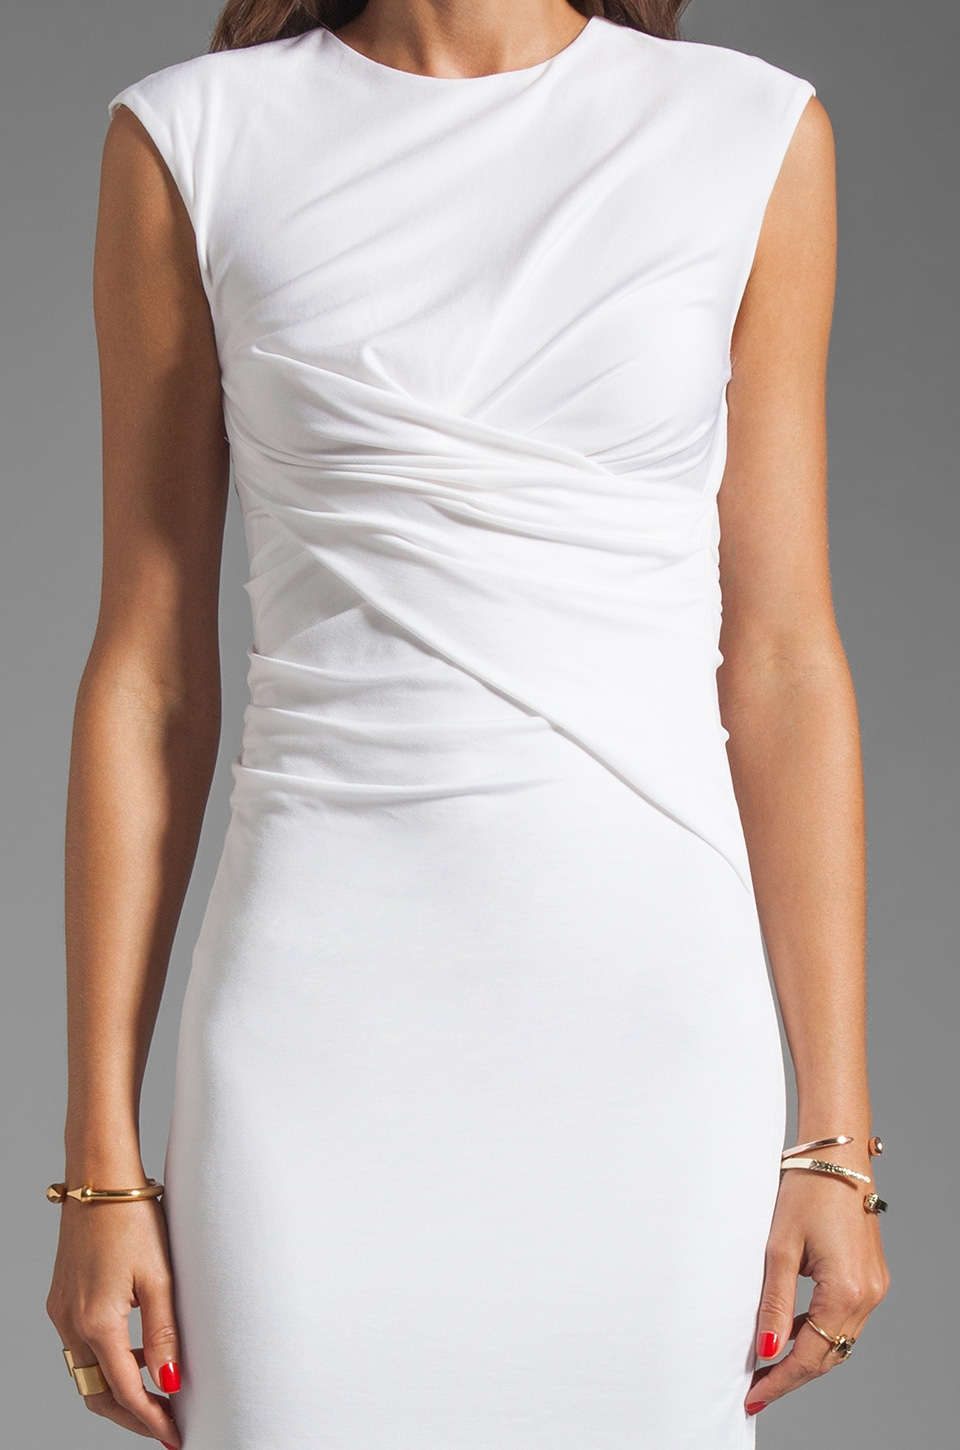 T by Alexander Wang Pique Mesh Sleeveless Dress in Ivory